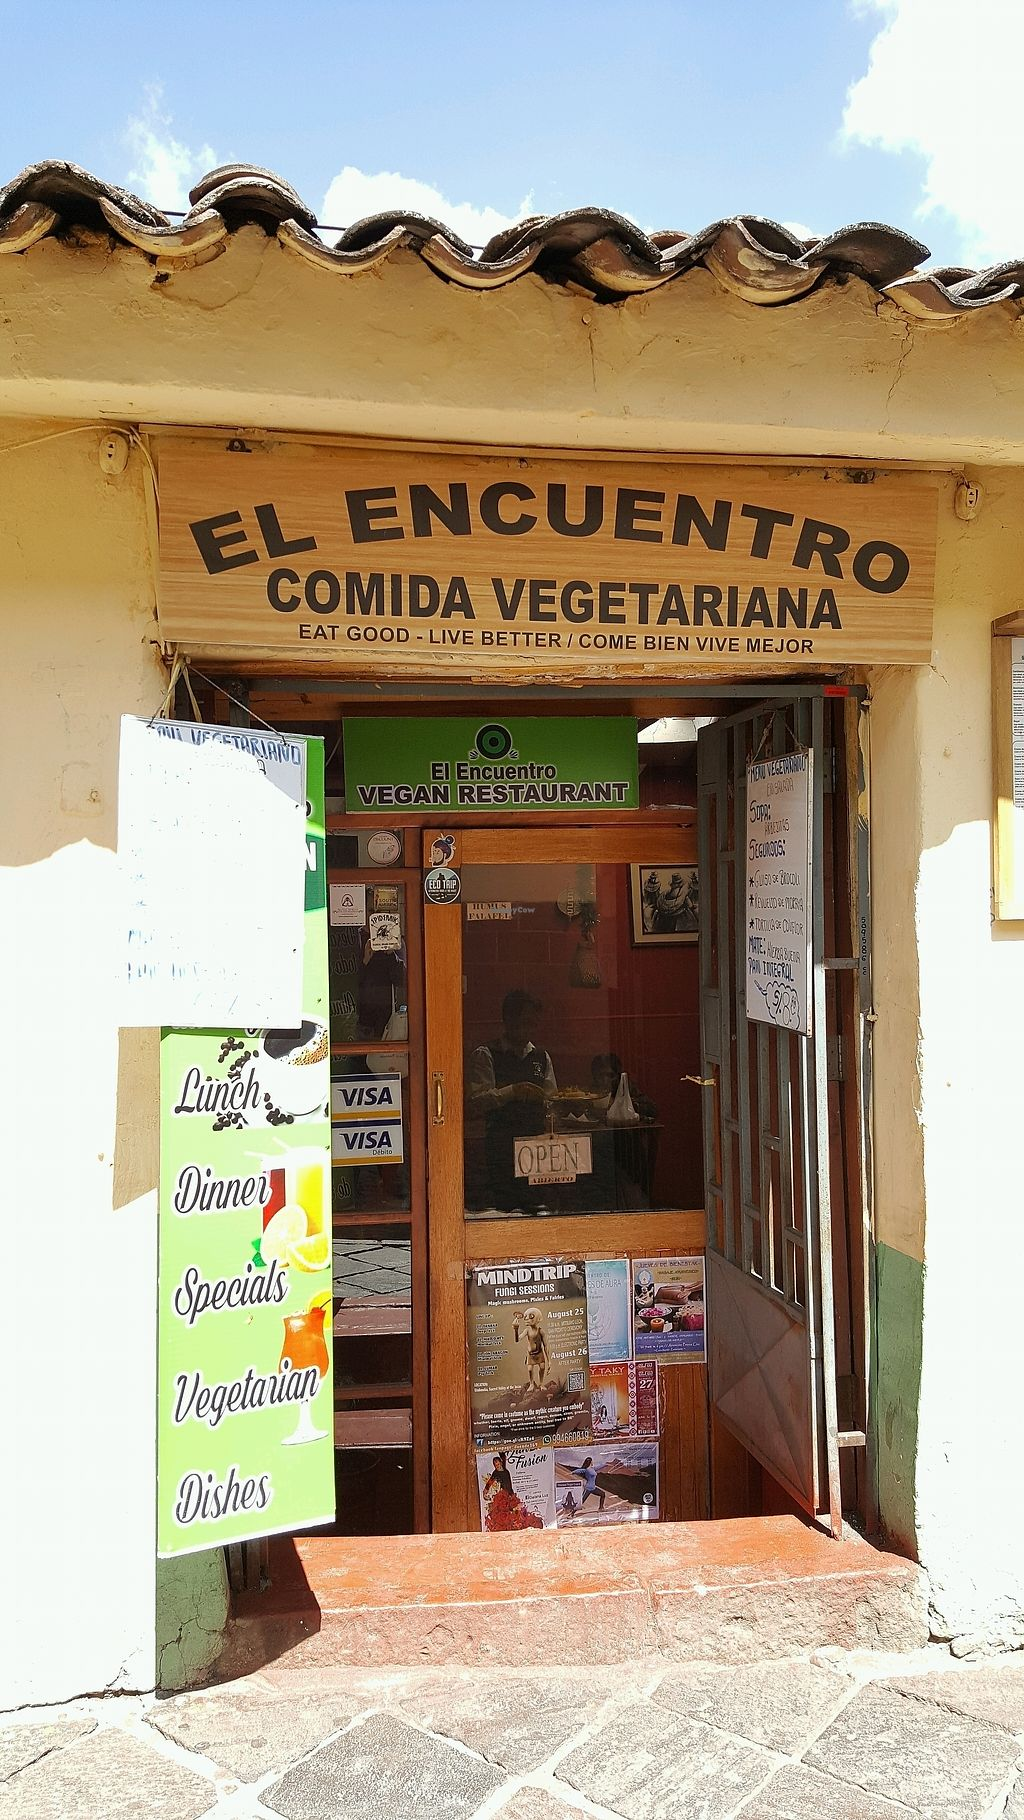 """Photo of El Encuentro - Tigre  by <a href=""""/members/profile/yehadut"""">yehadut</a> <br/>Neither all vegan or all vegetarian, in spite of sign <br/> August 26, 2017  - <a href='/contact/abuse/image/31109/297427'>Report</a>"""